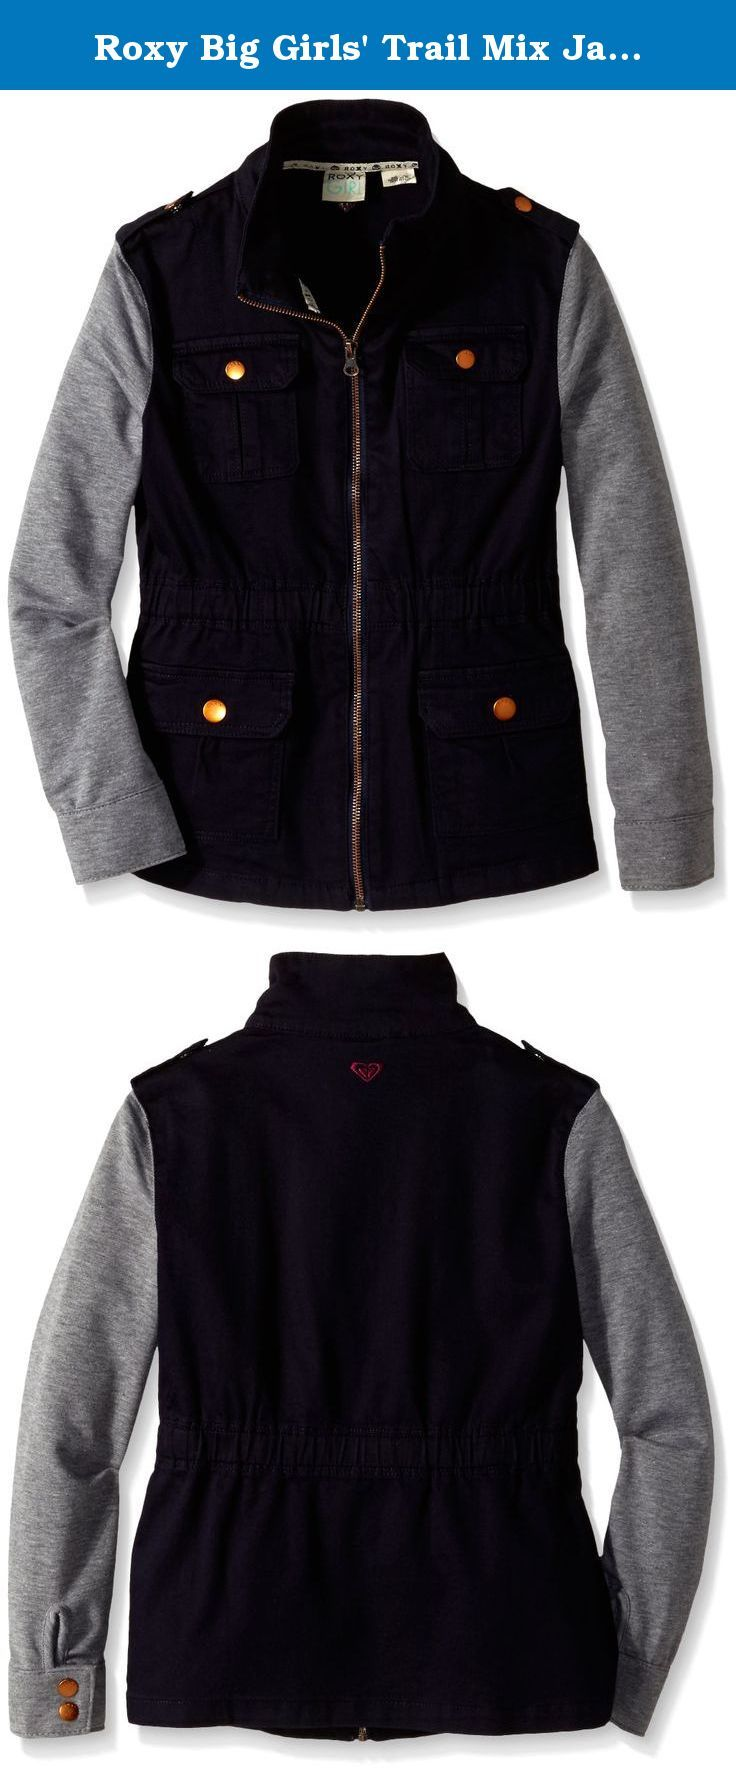 Roxy Big Girls' Trail Mix Jacket, Eclipse, 16. Roxy girl trail mix jacket. 100 percent twill, collared.